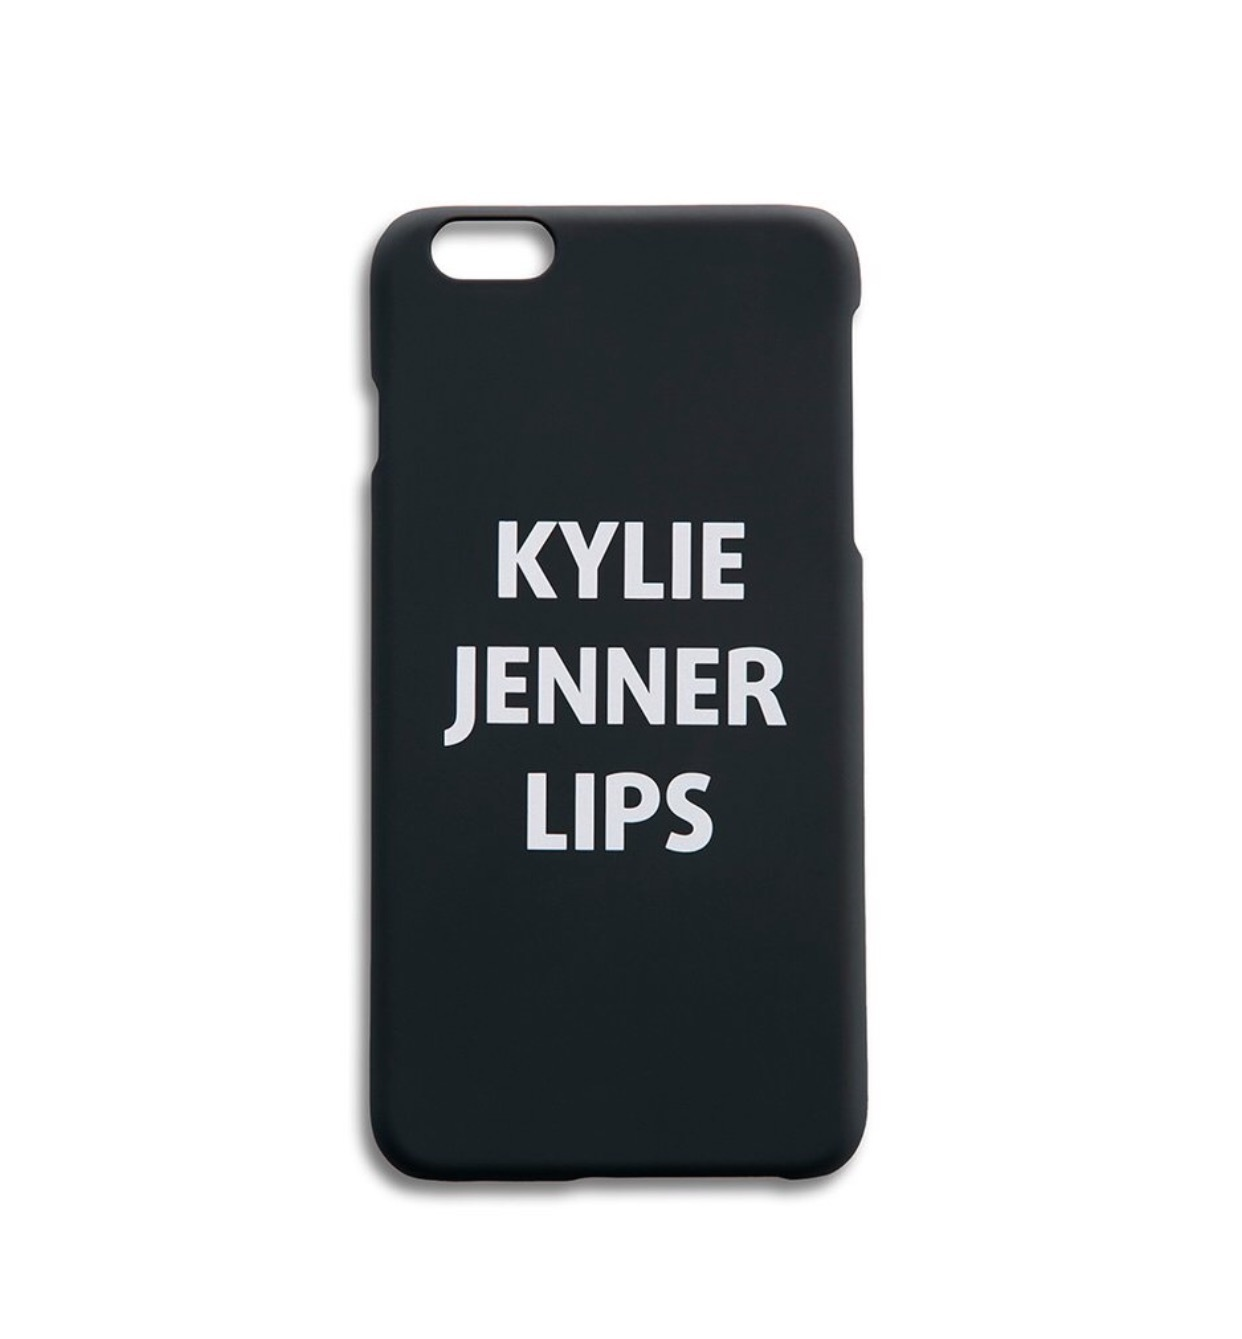 Kylie Jenner Shop iPhone7 Case